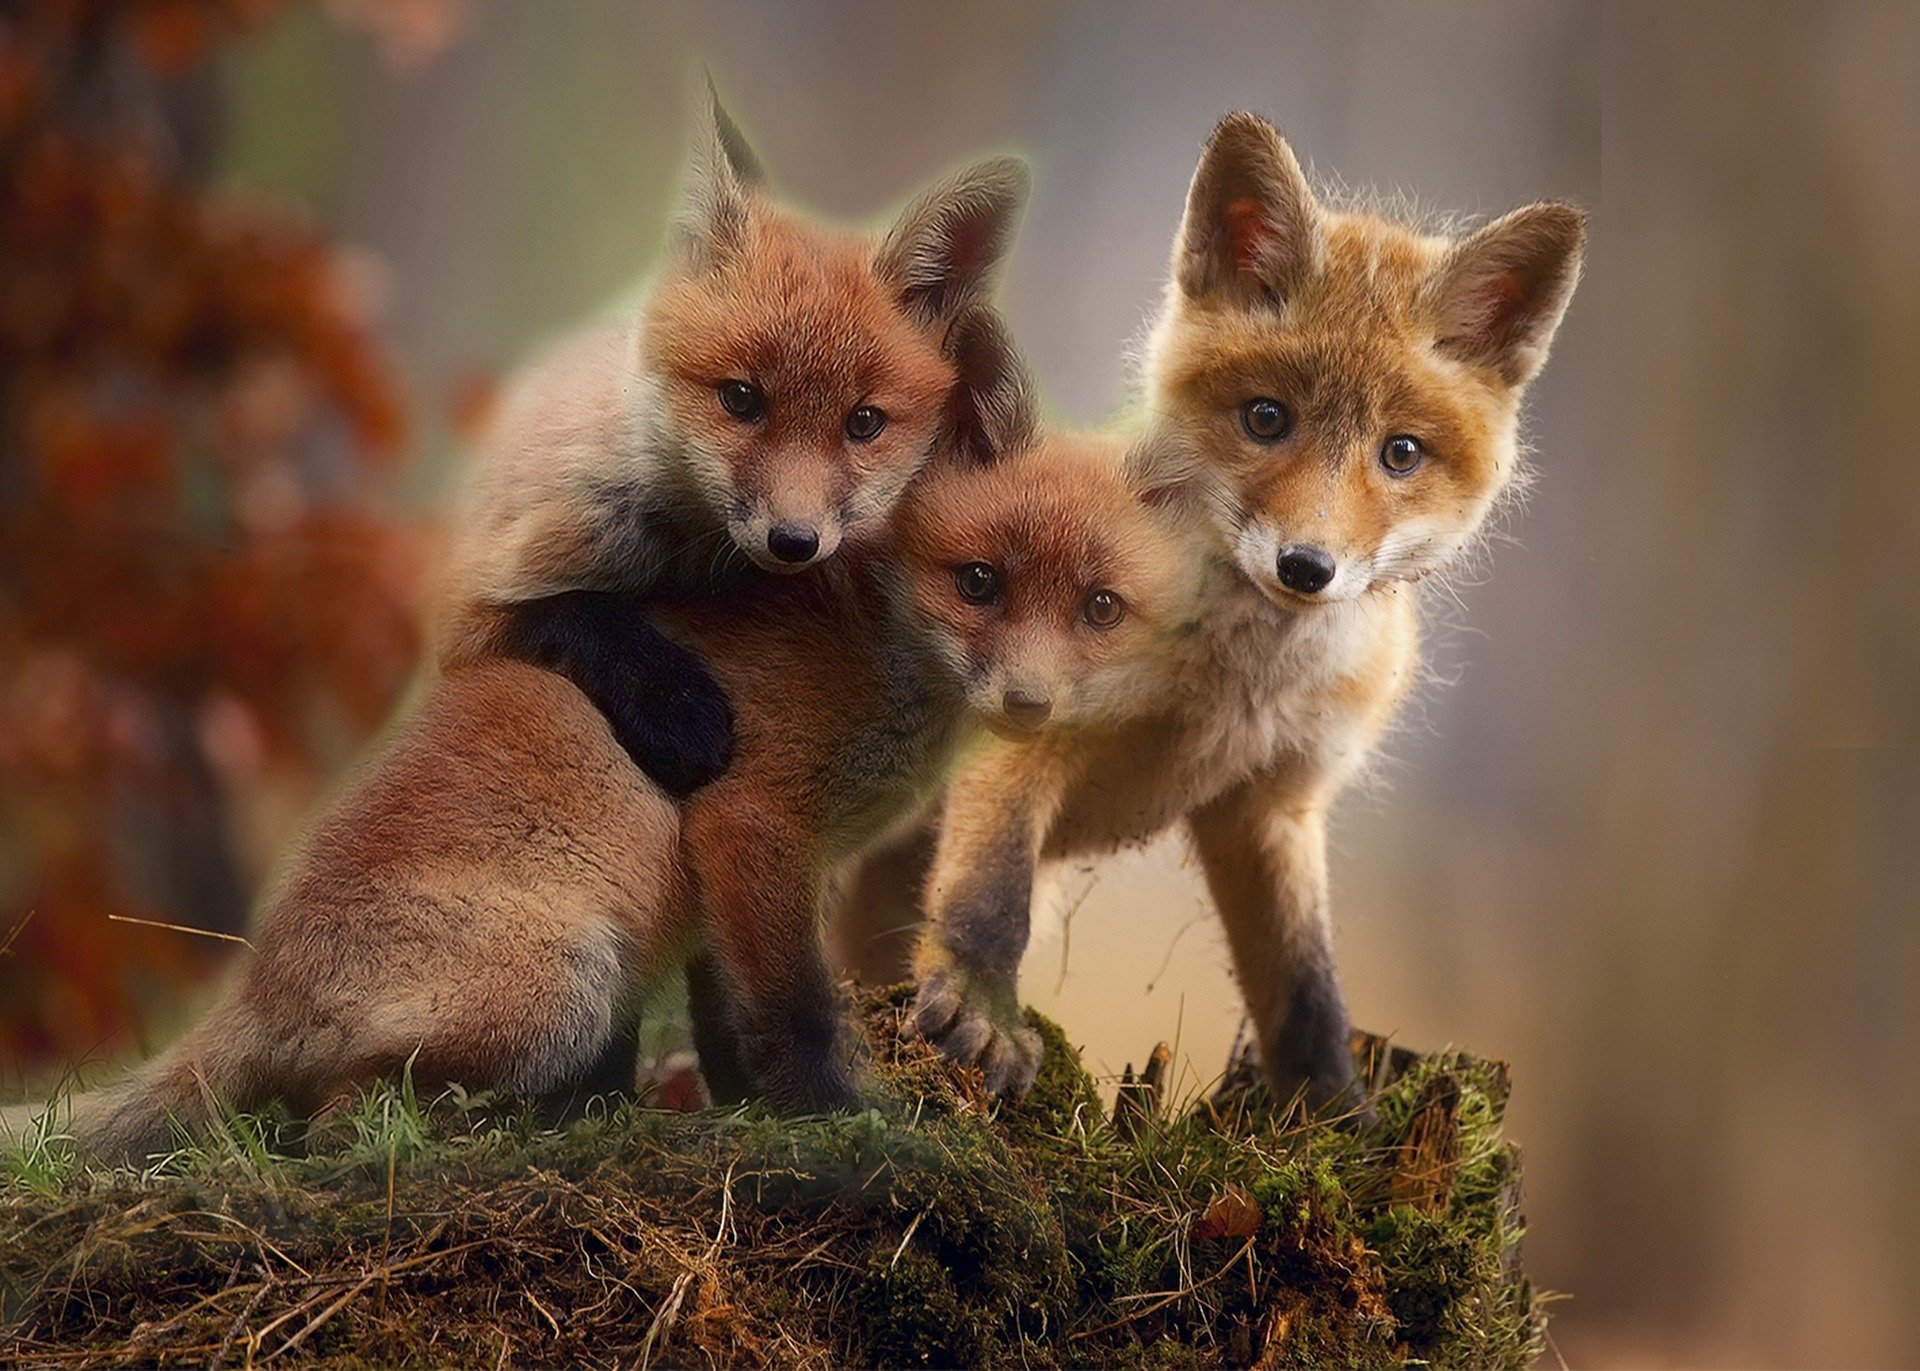 Picture of baby red foxes called kits